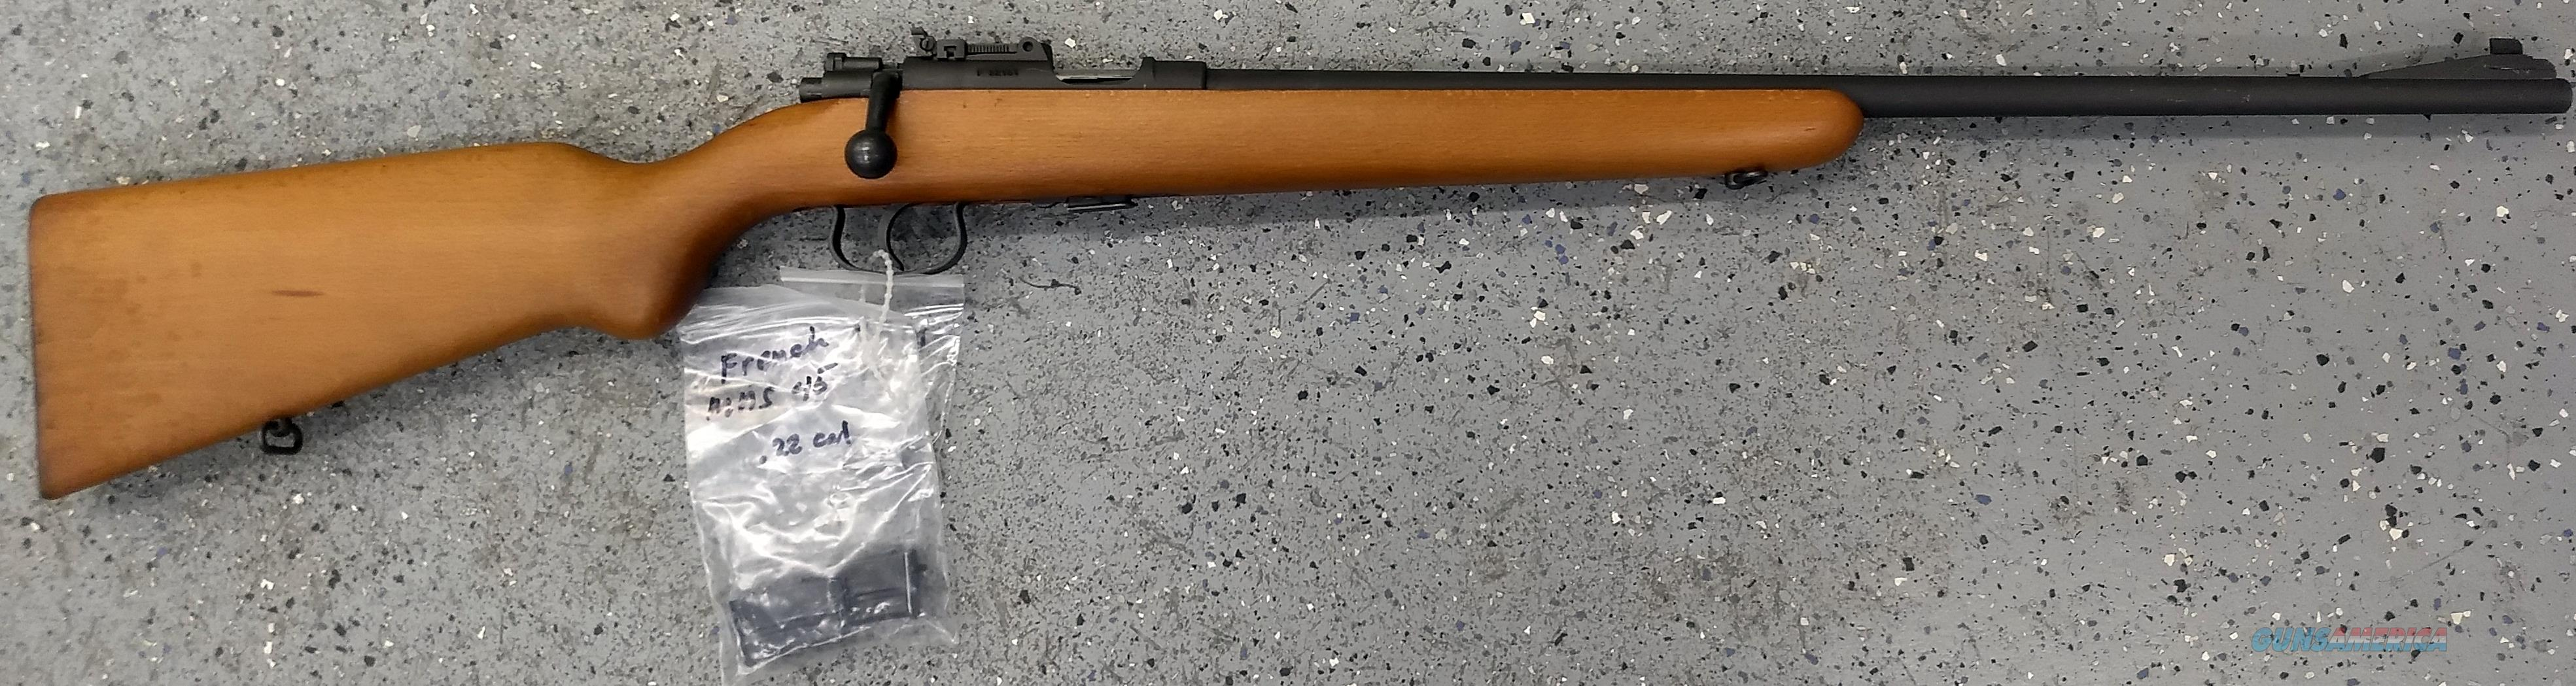 MAS 54 .22 lr Early 1950's Mint  Guns > Rifles > Military Misc. Rifles Non-US > FrenchMAS